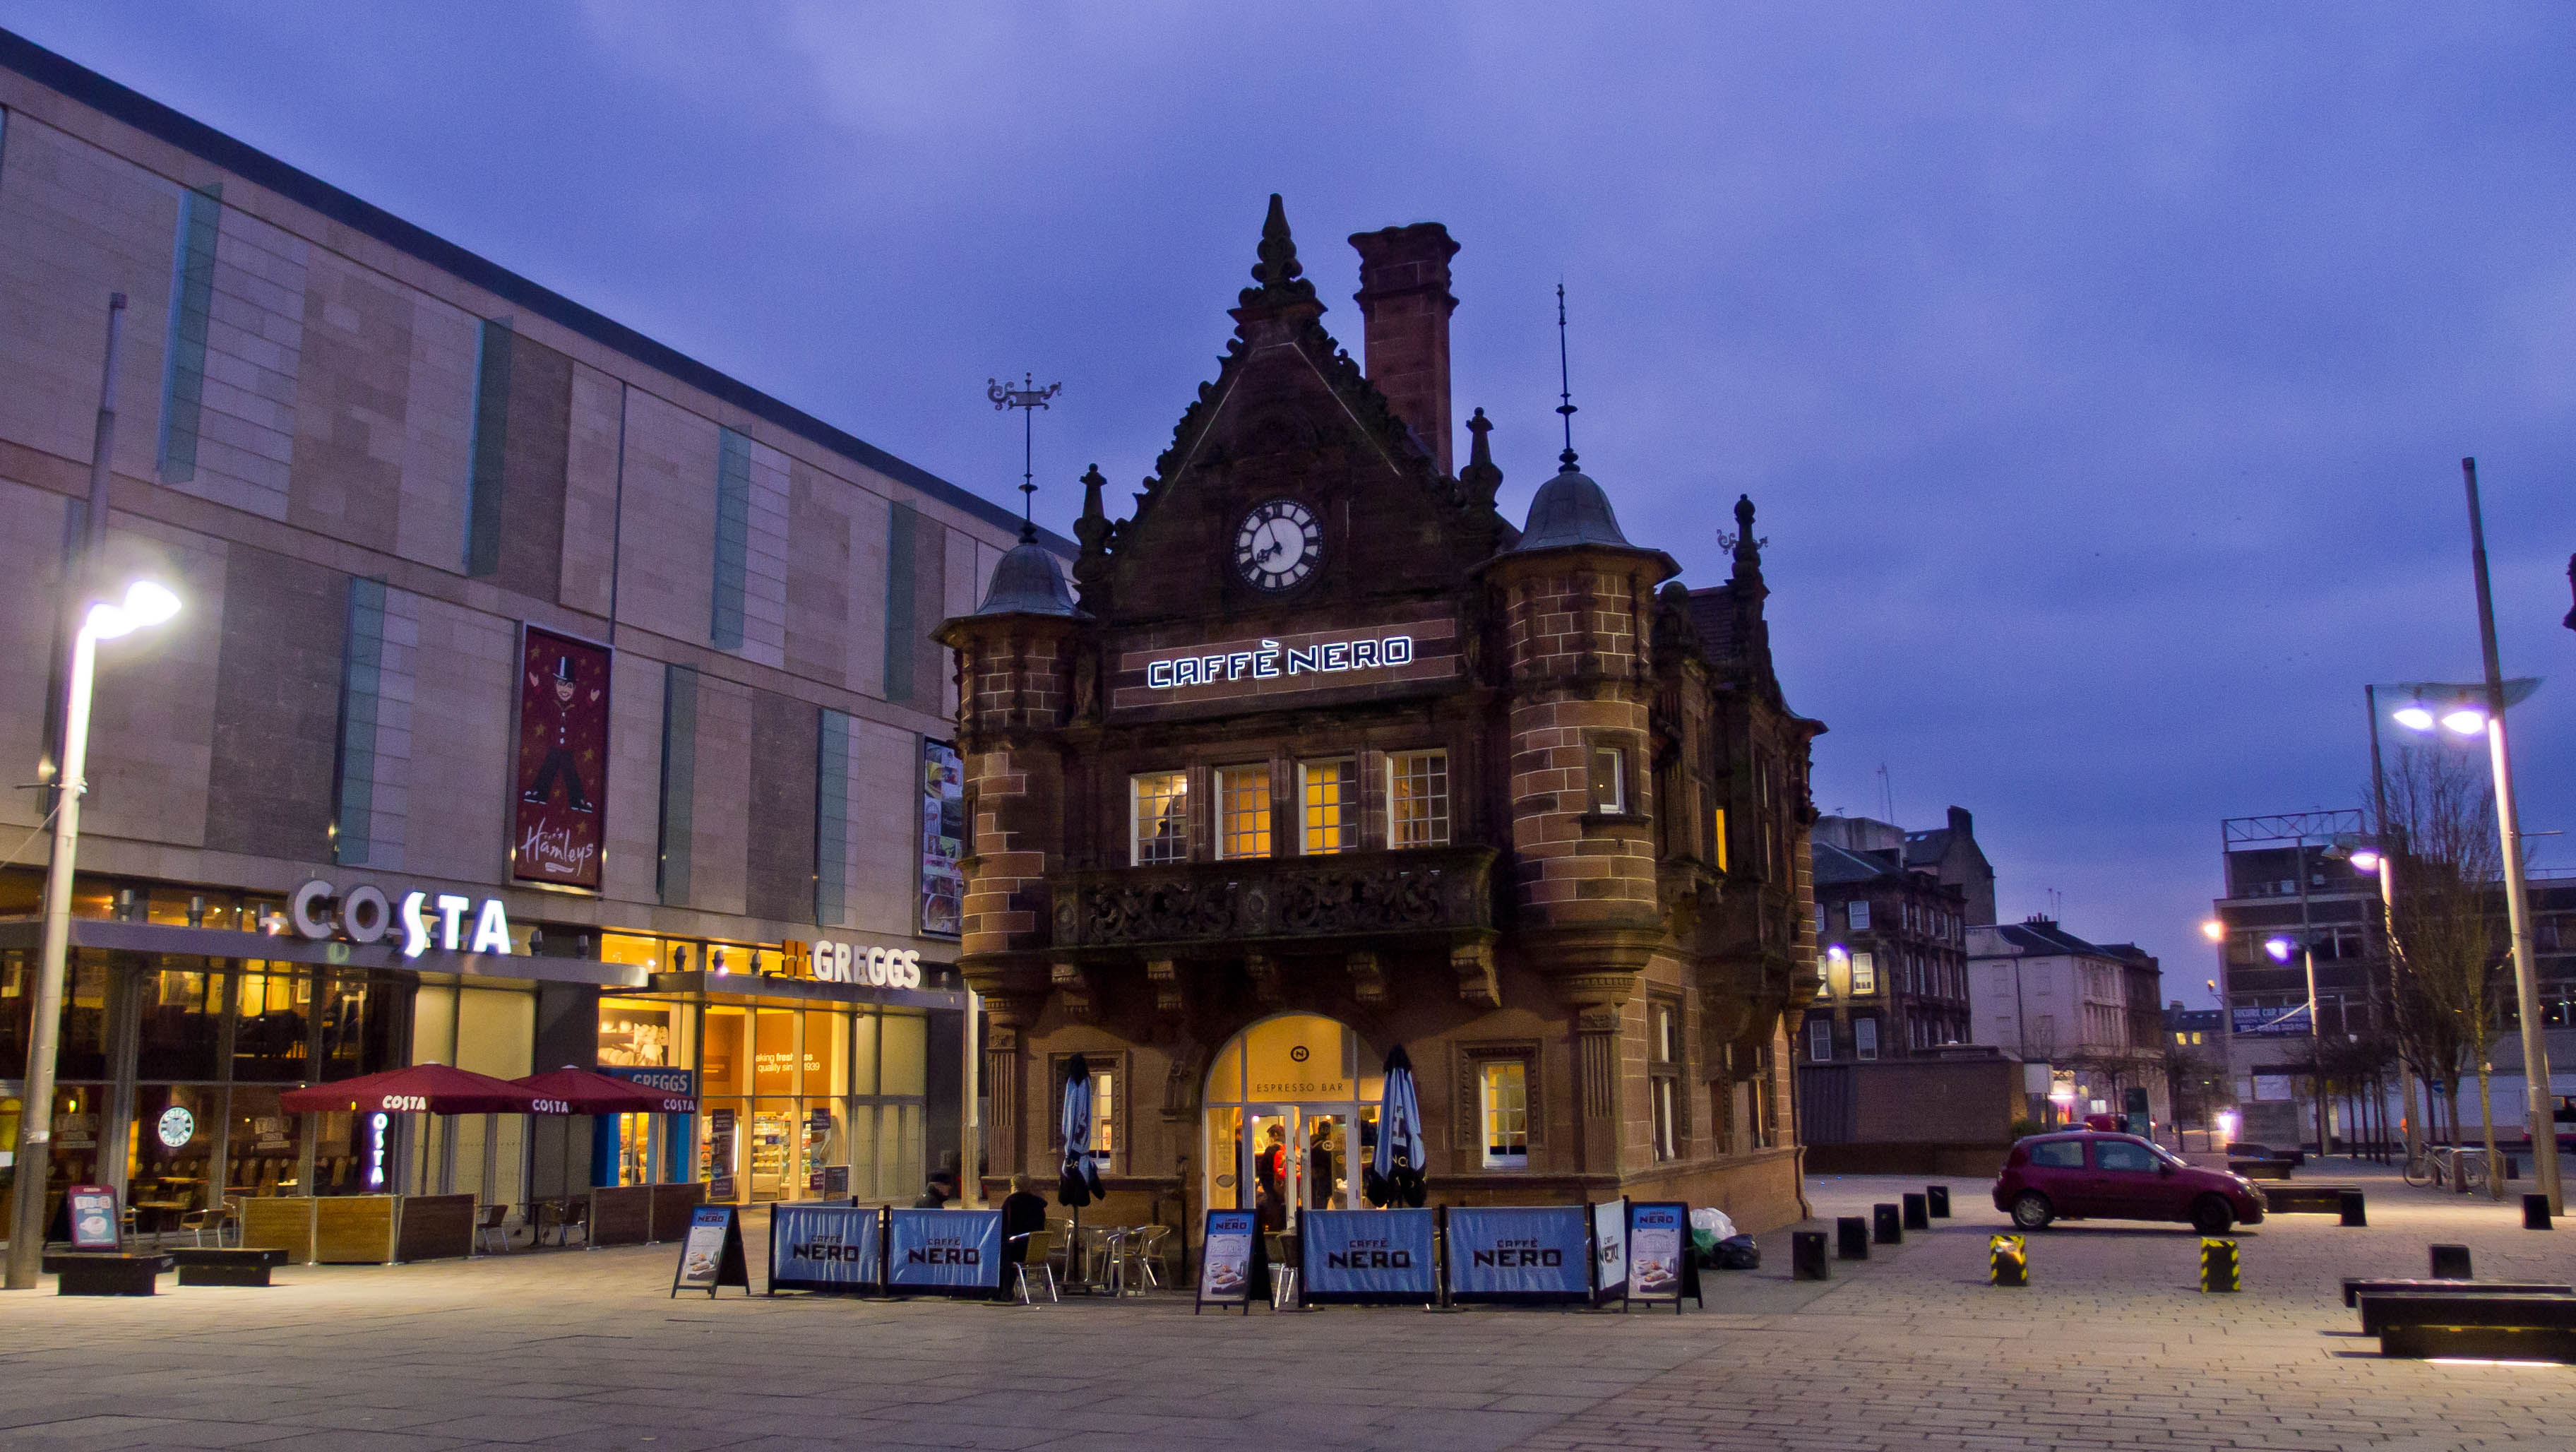 St Enoch Square - Wikipedia